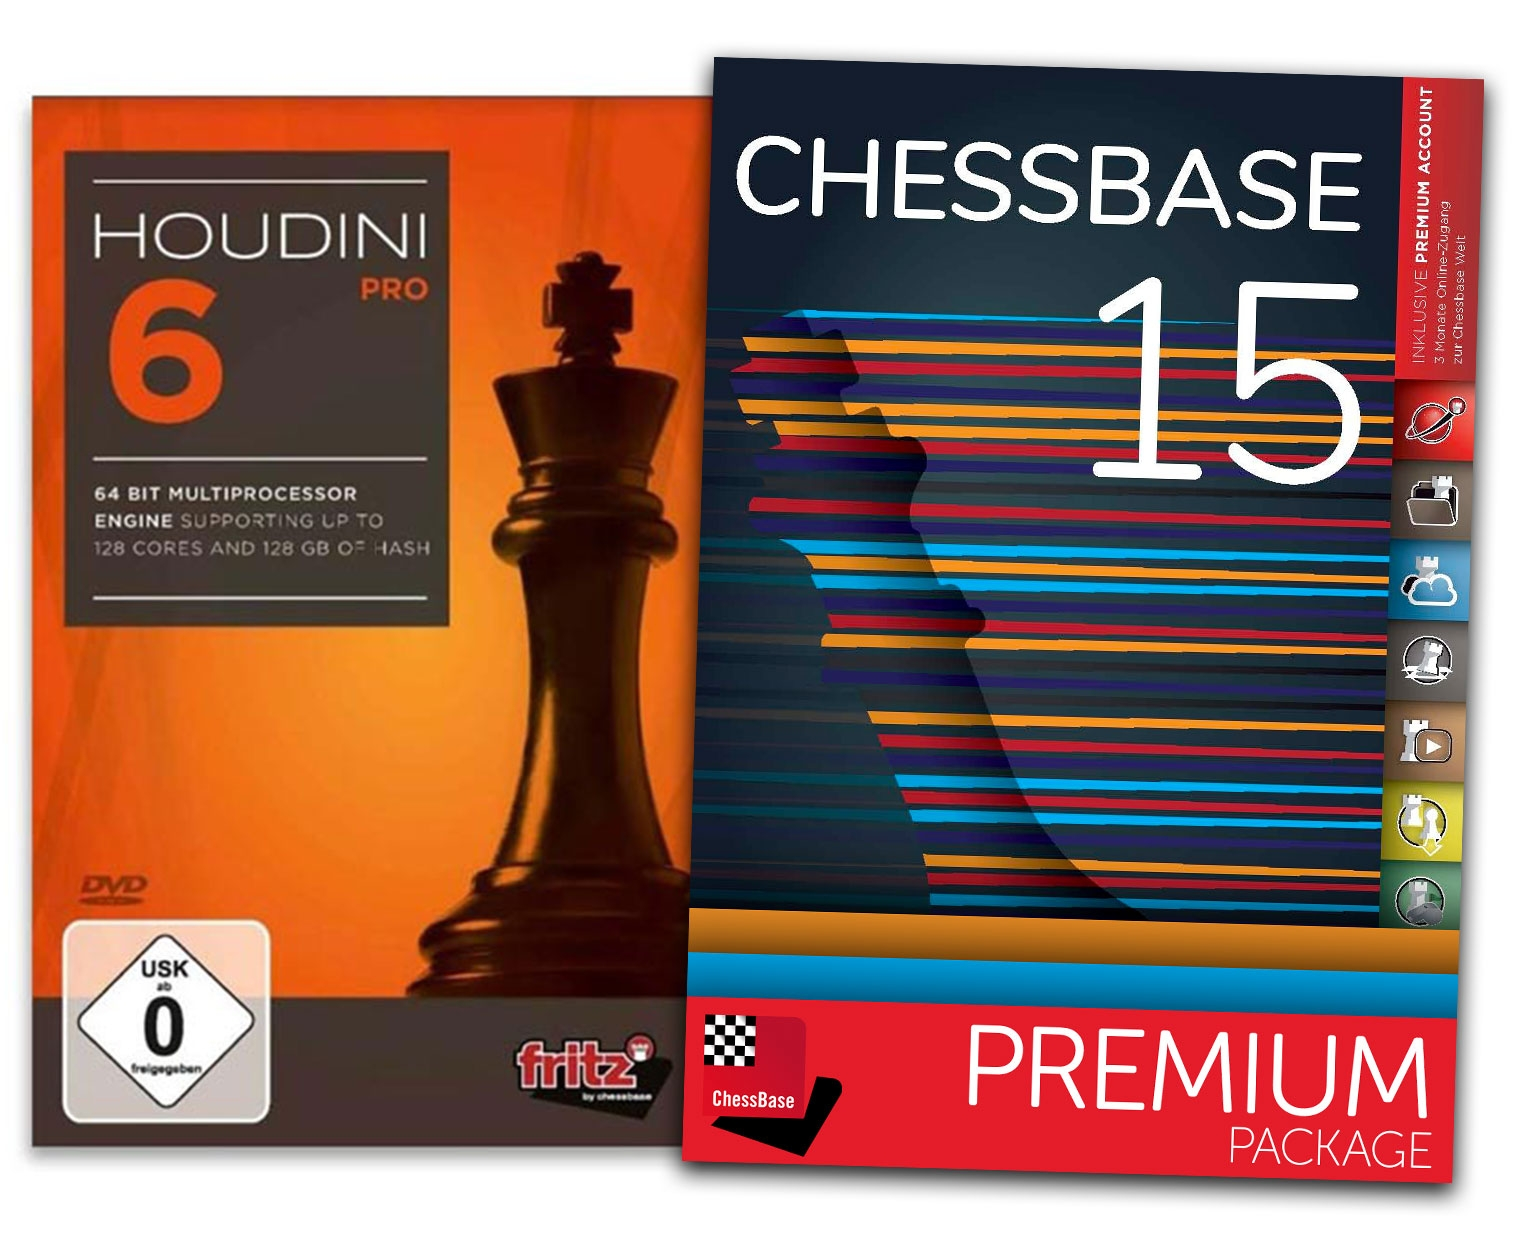 Details about Houdini 6 Pro and ChessBase 15 Premium - Bundle Chess Software